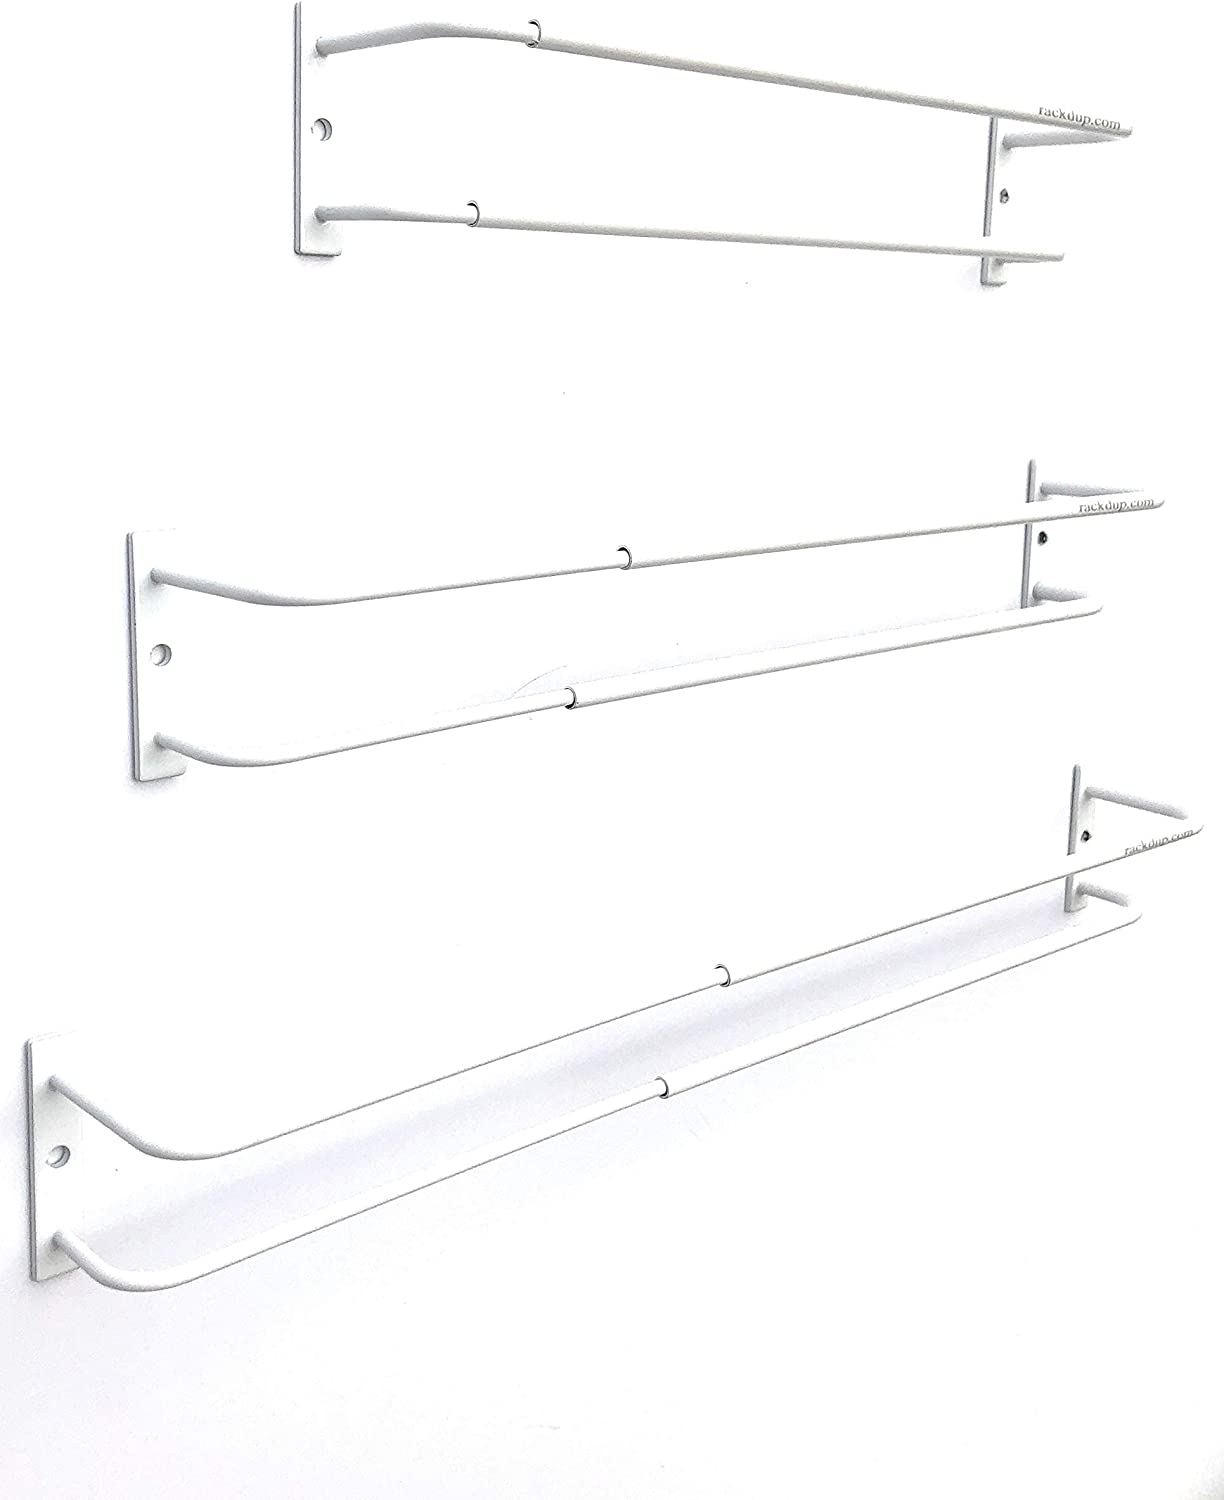 Expandable Rack (white, set of 3) - Mount on cabinet door/pantry/wall - Convenient storage for spices, K-cups, medications, acrylic paints & more - Great for use in kitchens, bathrooms & RV/campers